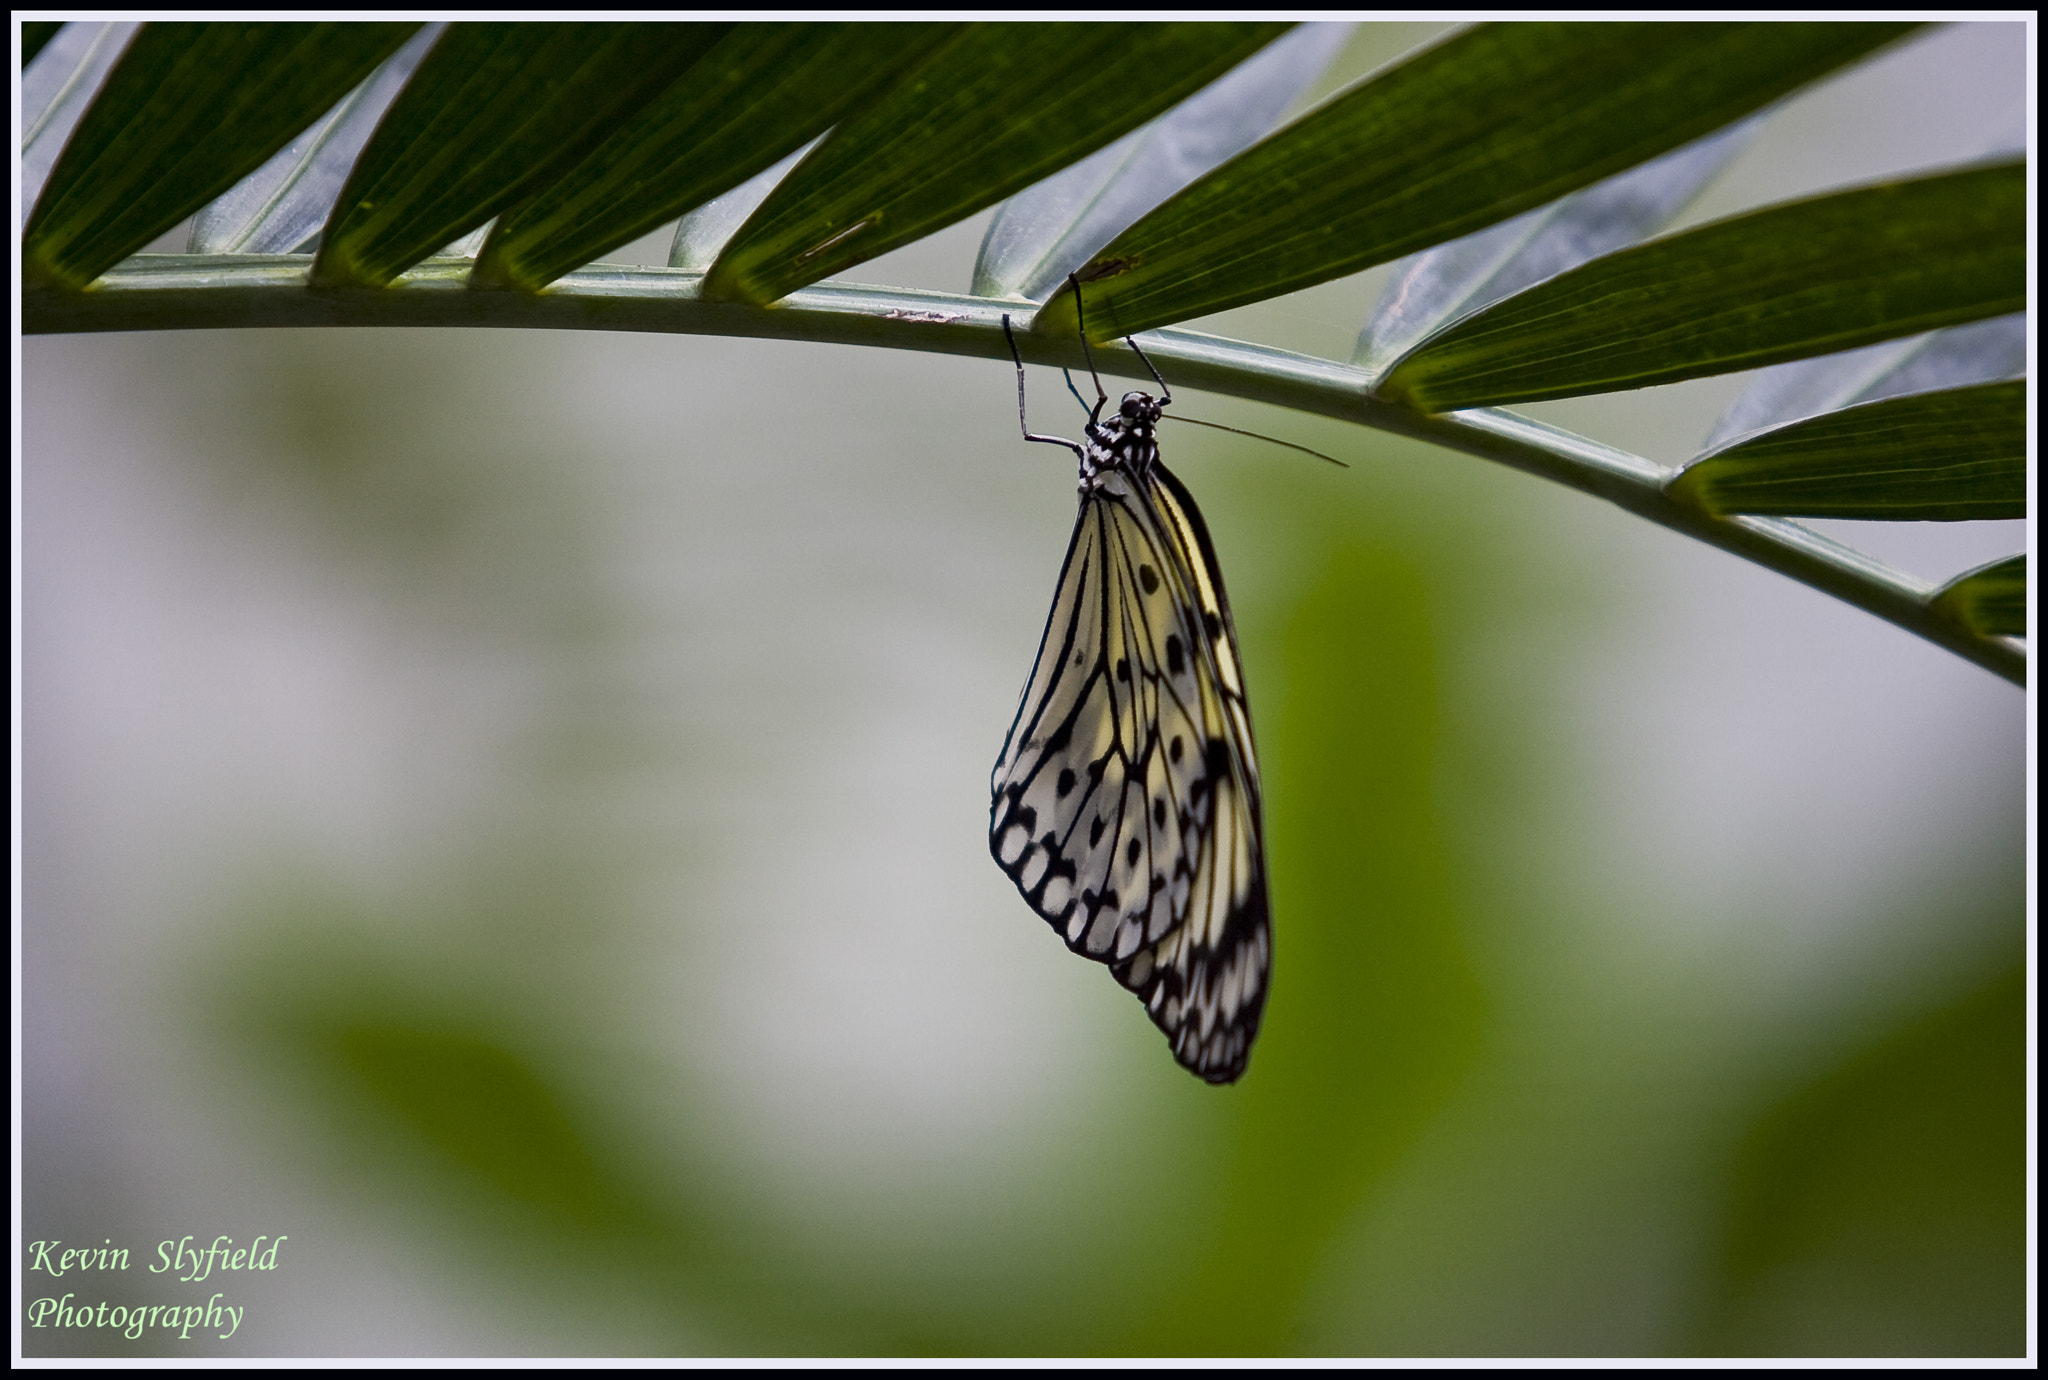 Photograph tree nymph butterfly by kevinslyfield on 500px